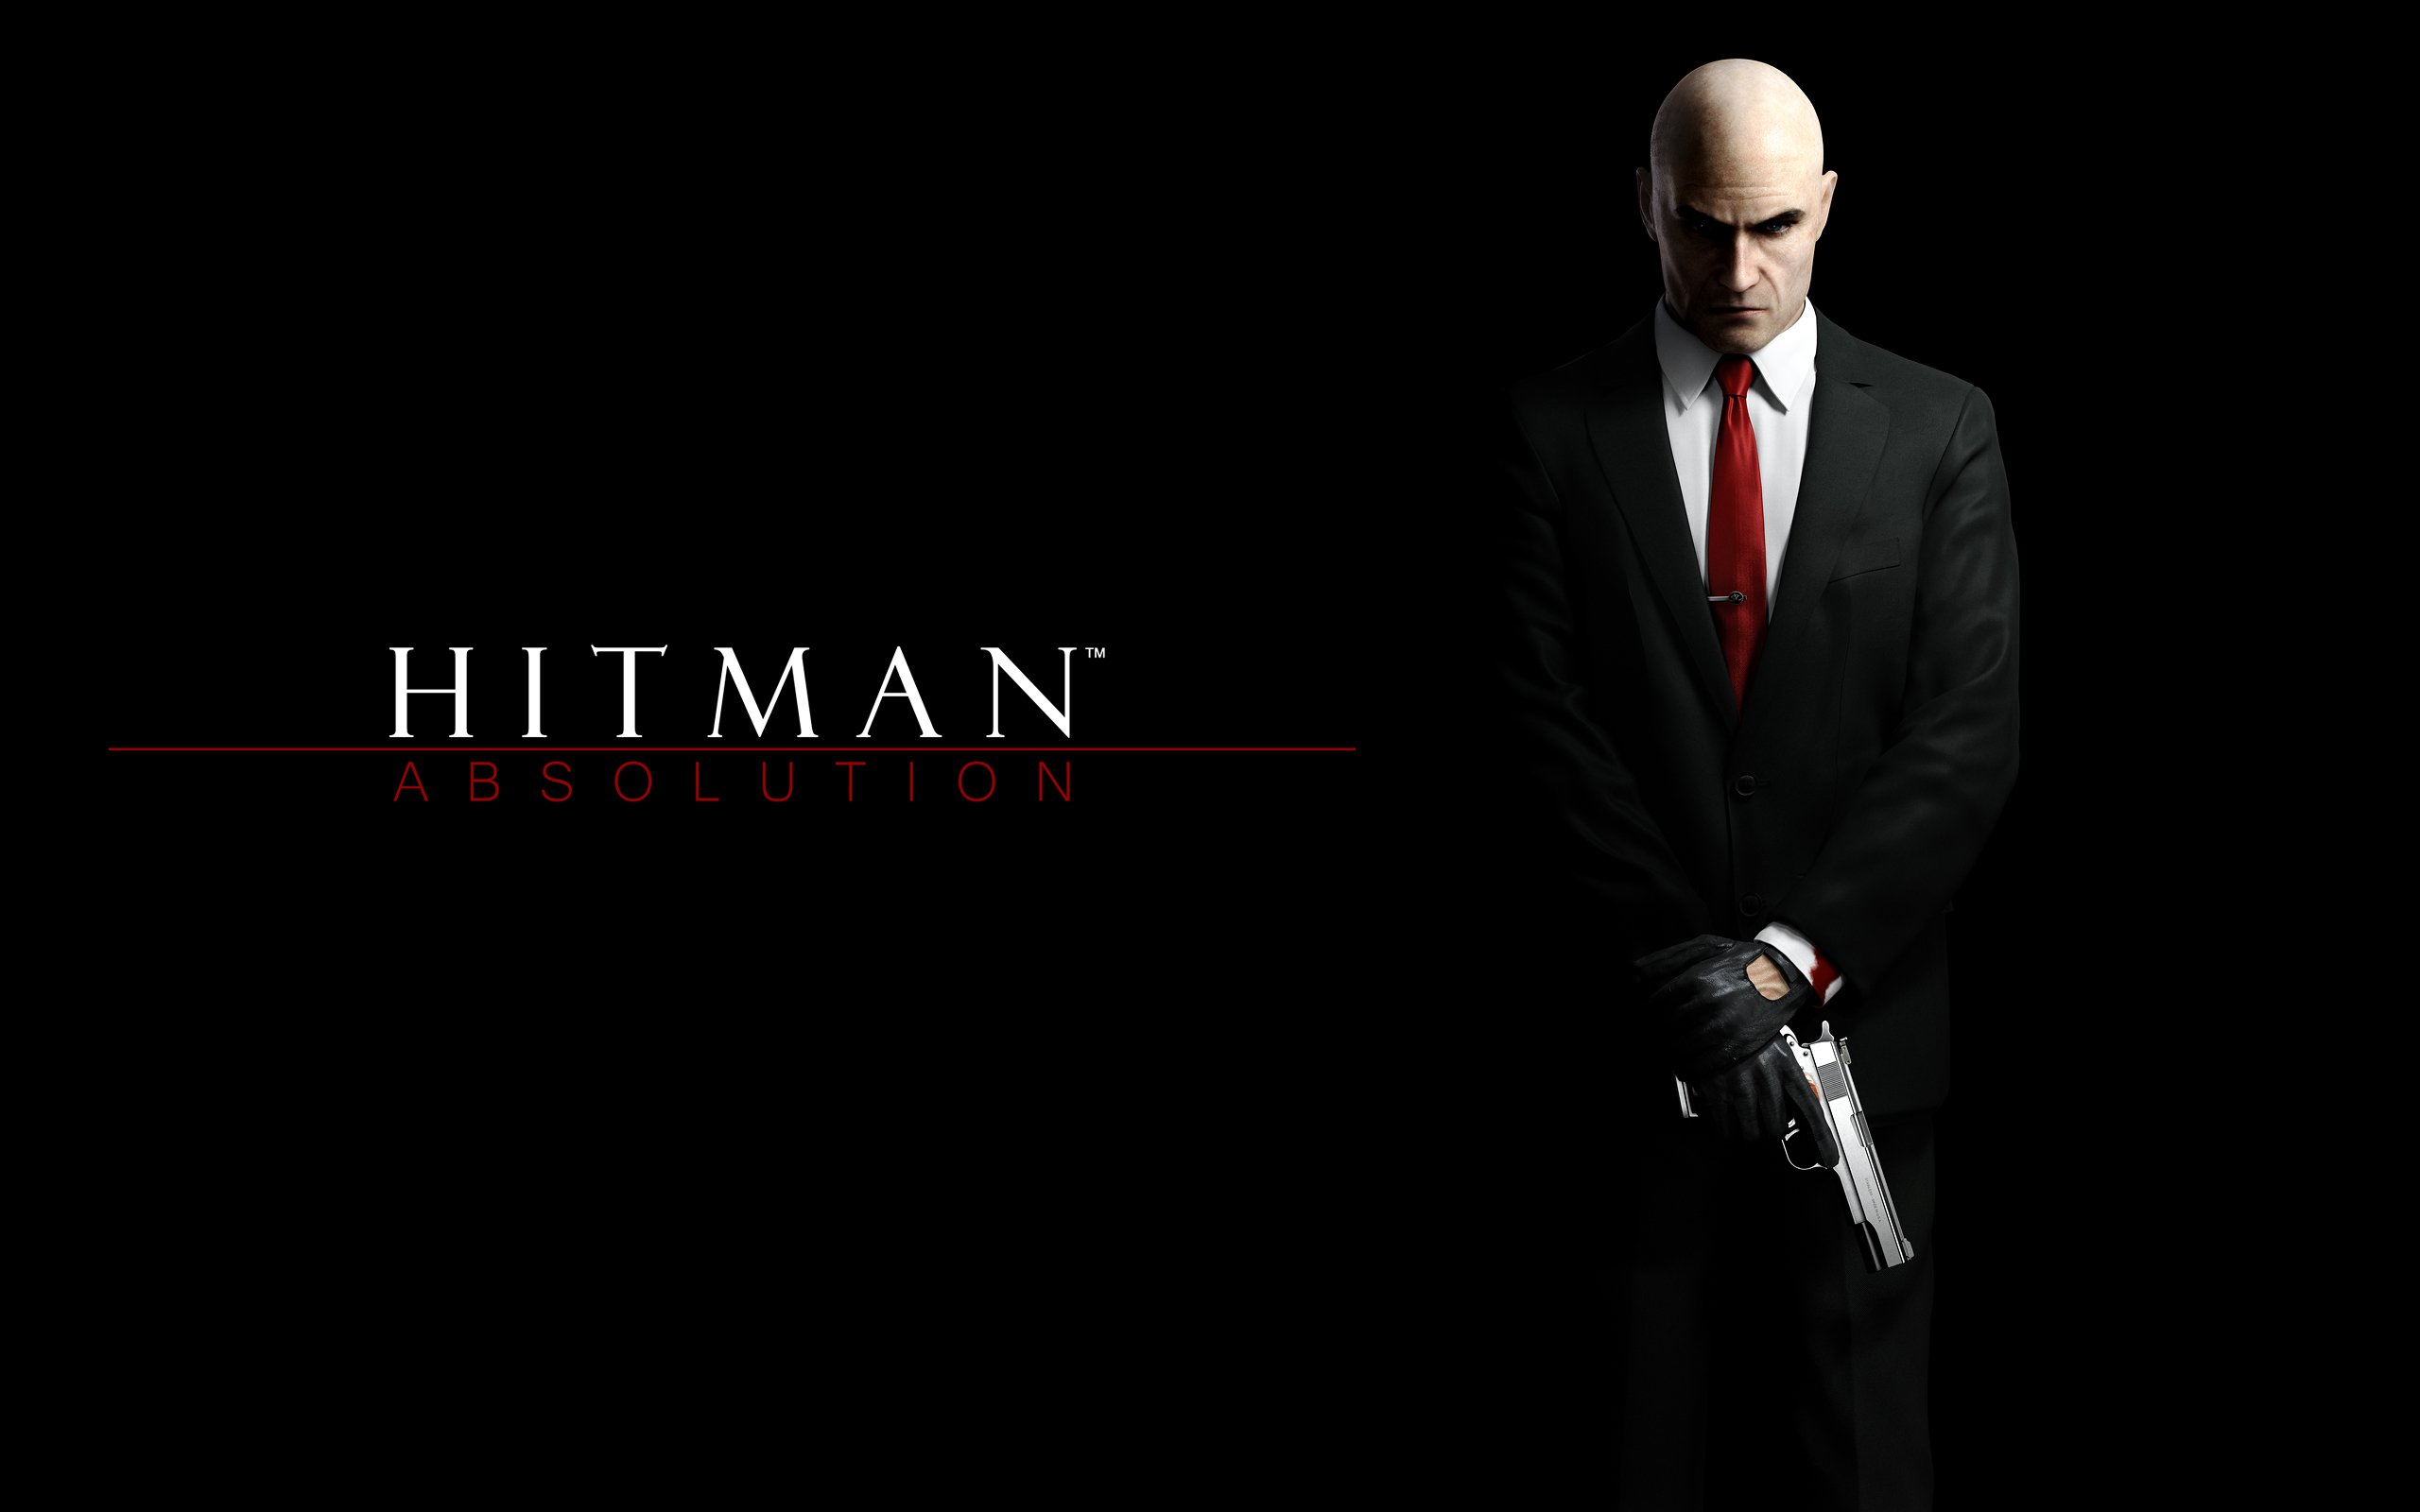 Hitman Absolution Game Wallpapers HD Wallpapers 2560x1600